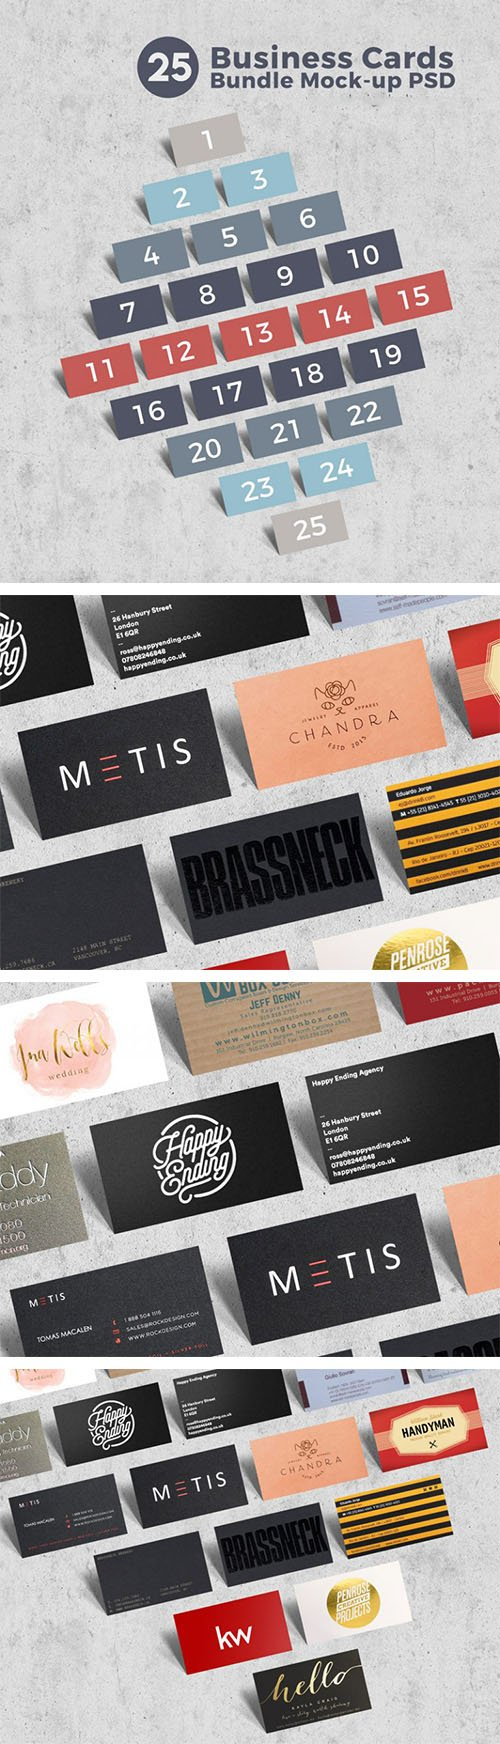 PSD Mock-Up - Business Card Bundle